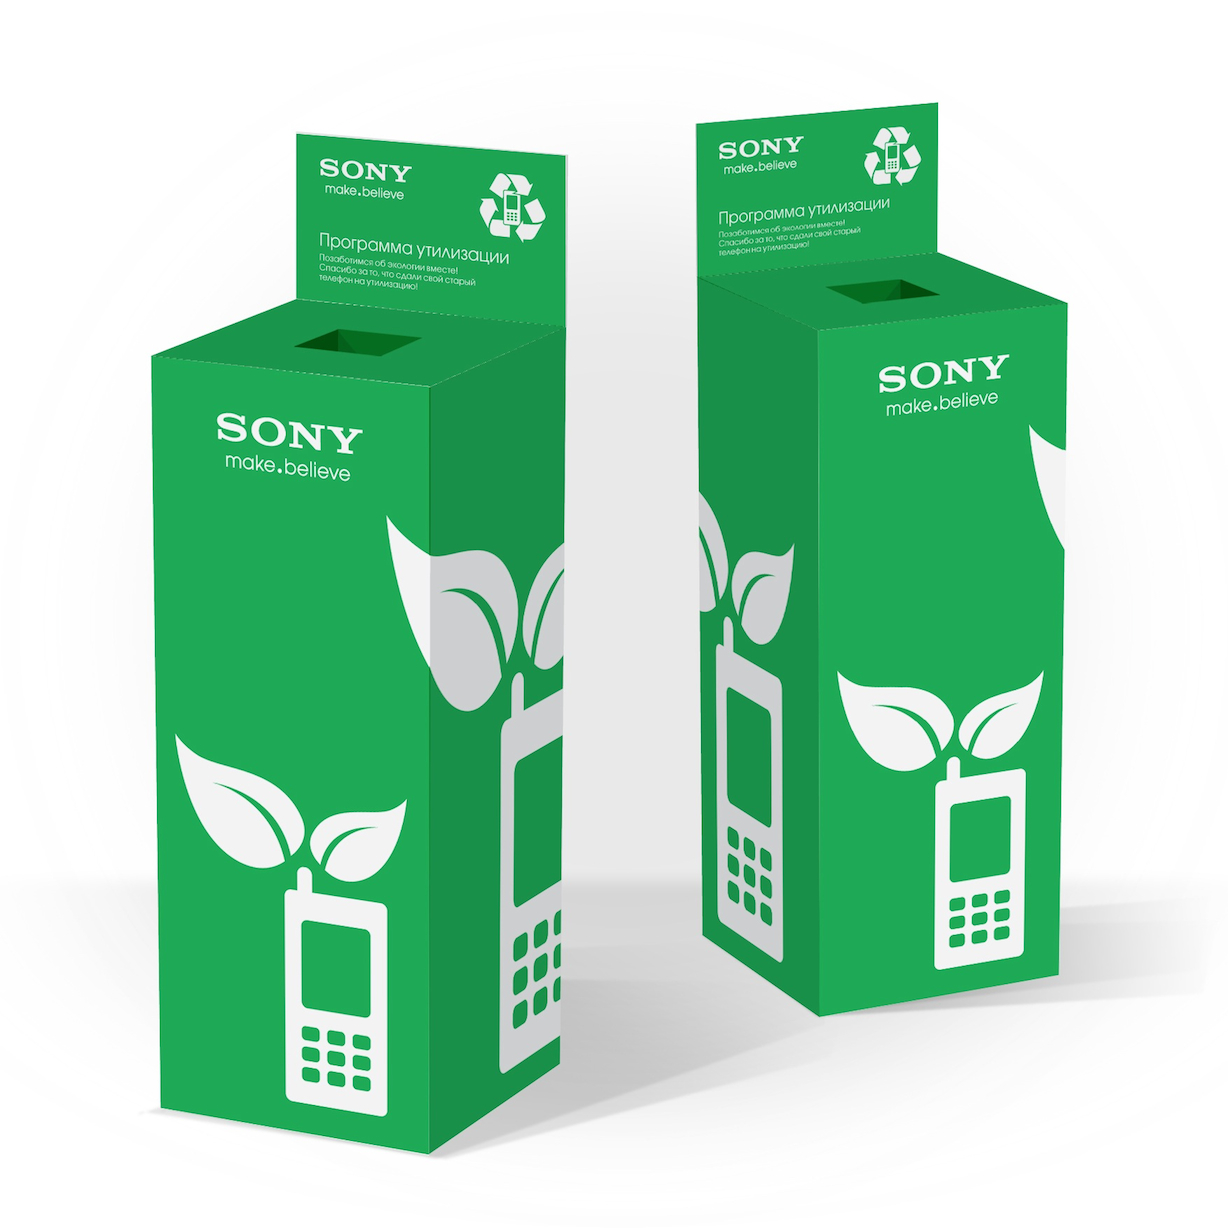 South america sony csr invest in recycling ambassador report our actions tunza eco - Recycling mobel ...